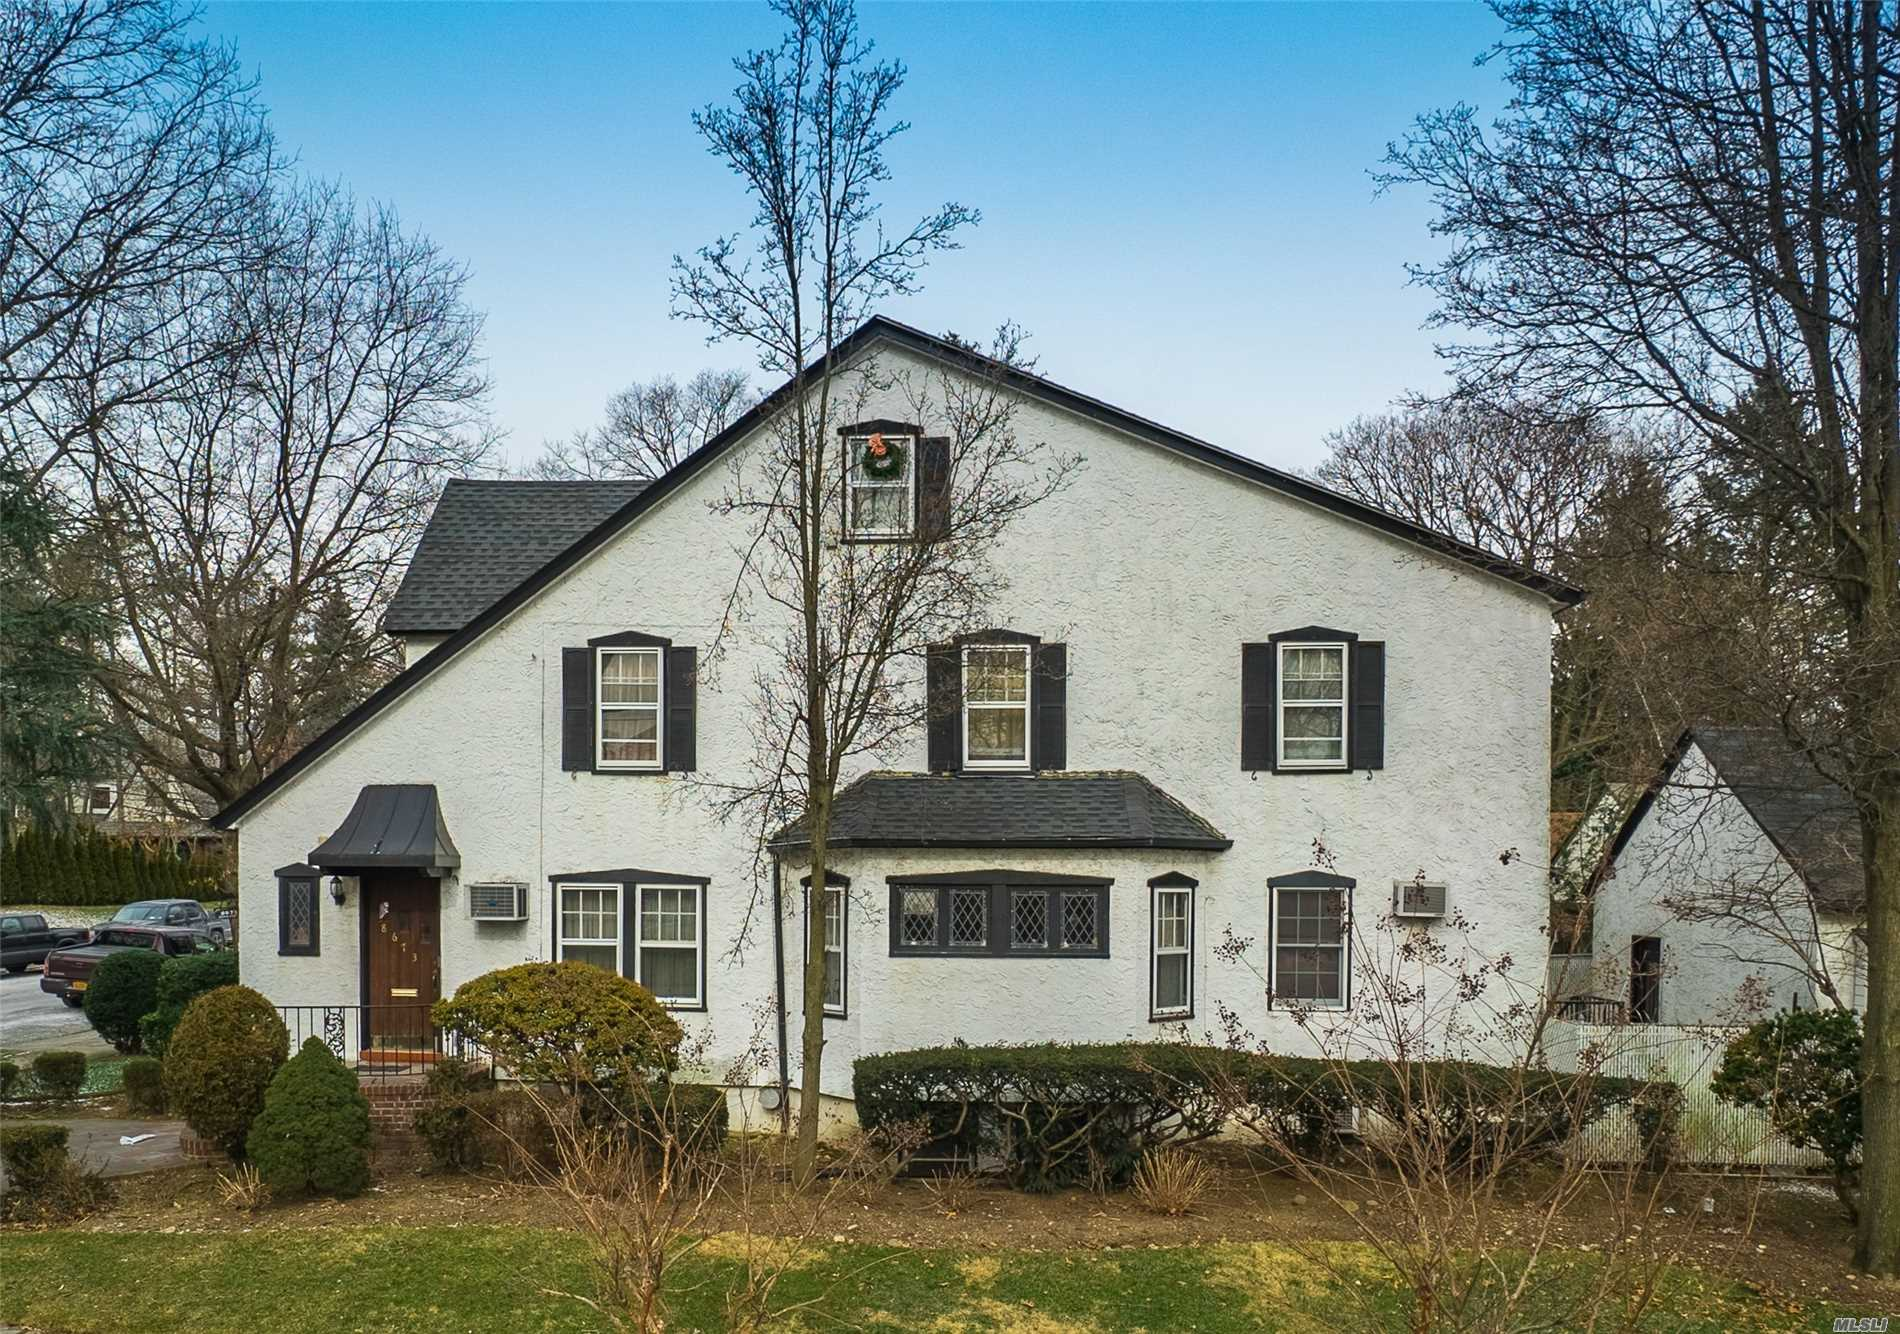 Old World character abounds in this 4 bedroom 2.5 bath colonial! This very well kept home features a 2-car detached garage, gas fireplace in the finished basement, gas heat, manicured landscaping and a prime location near mass transit and major highways.